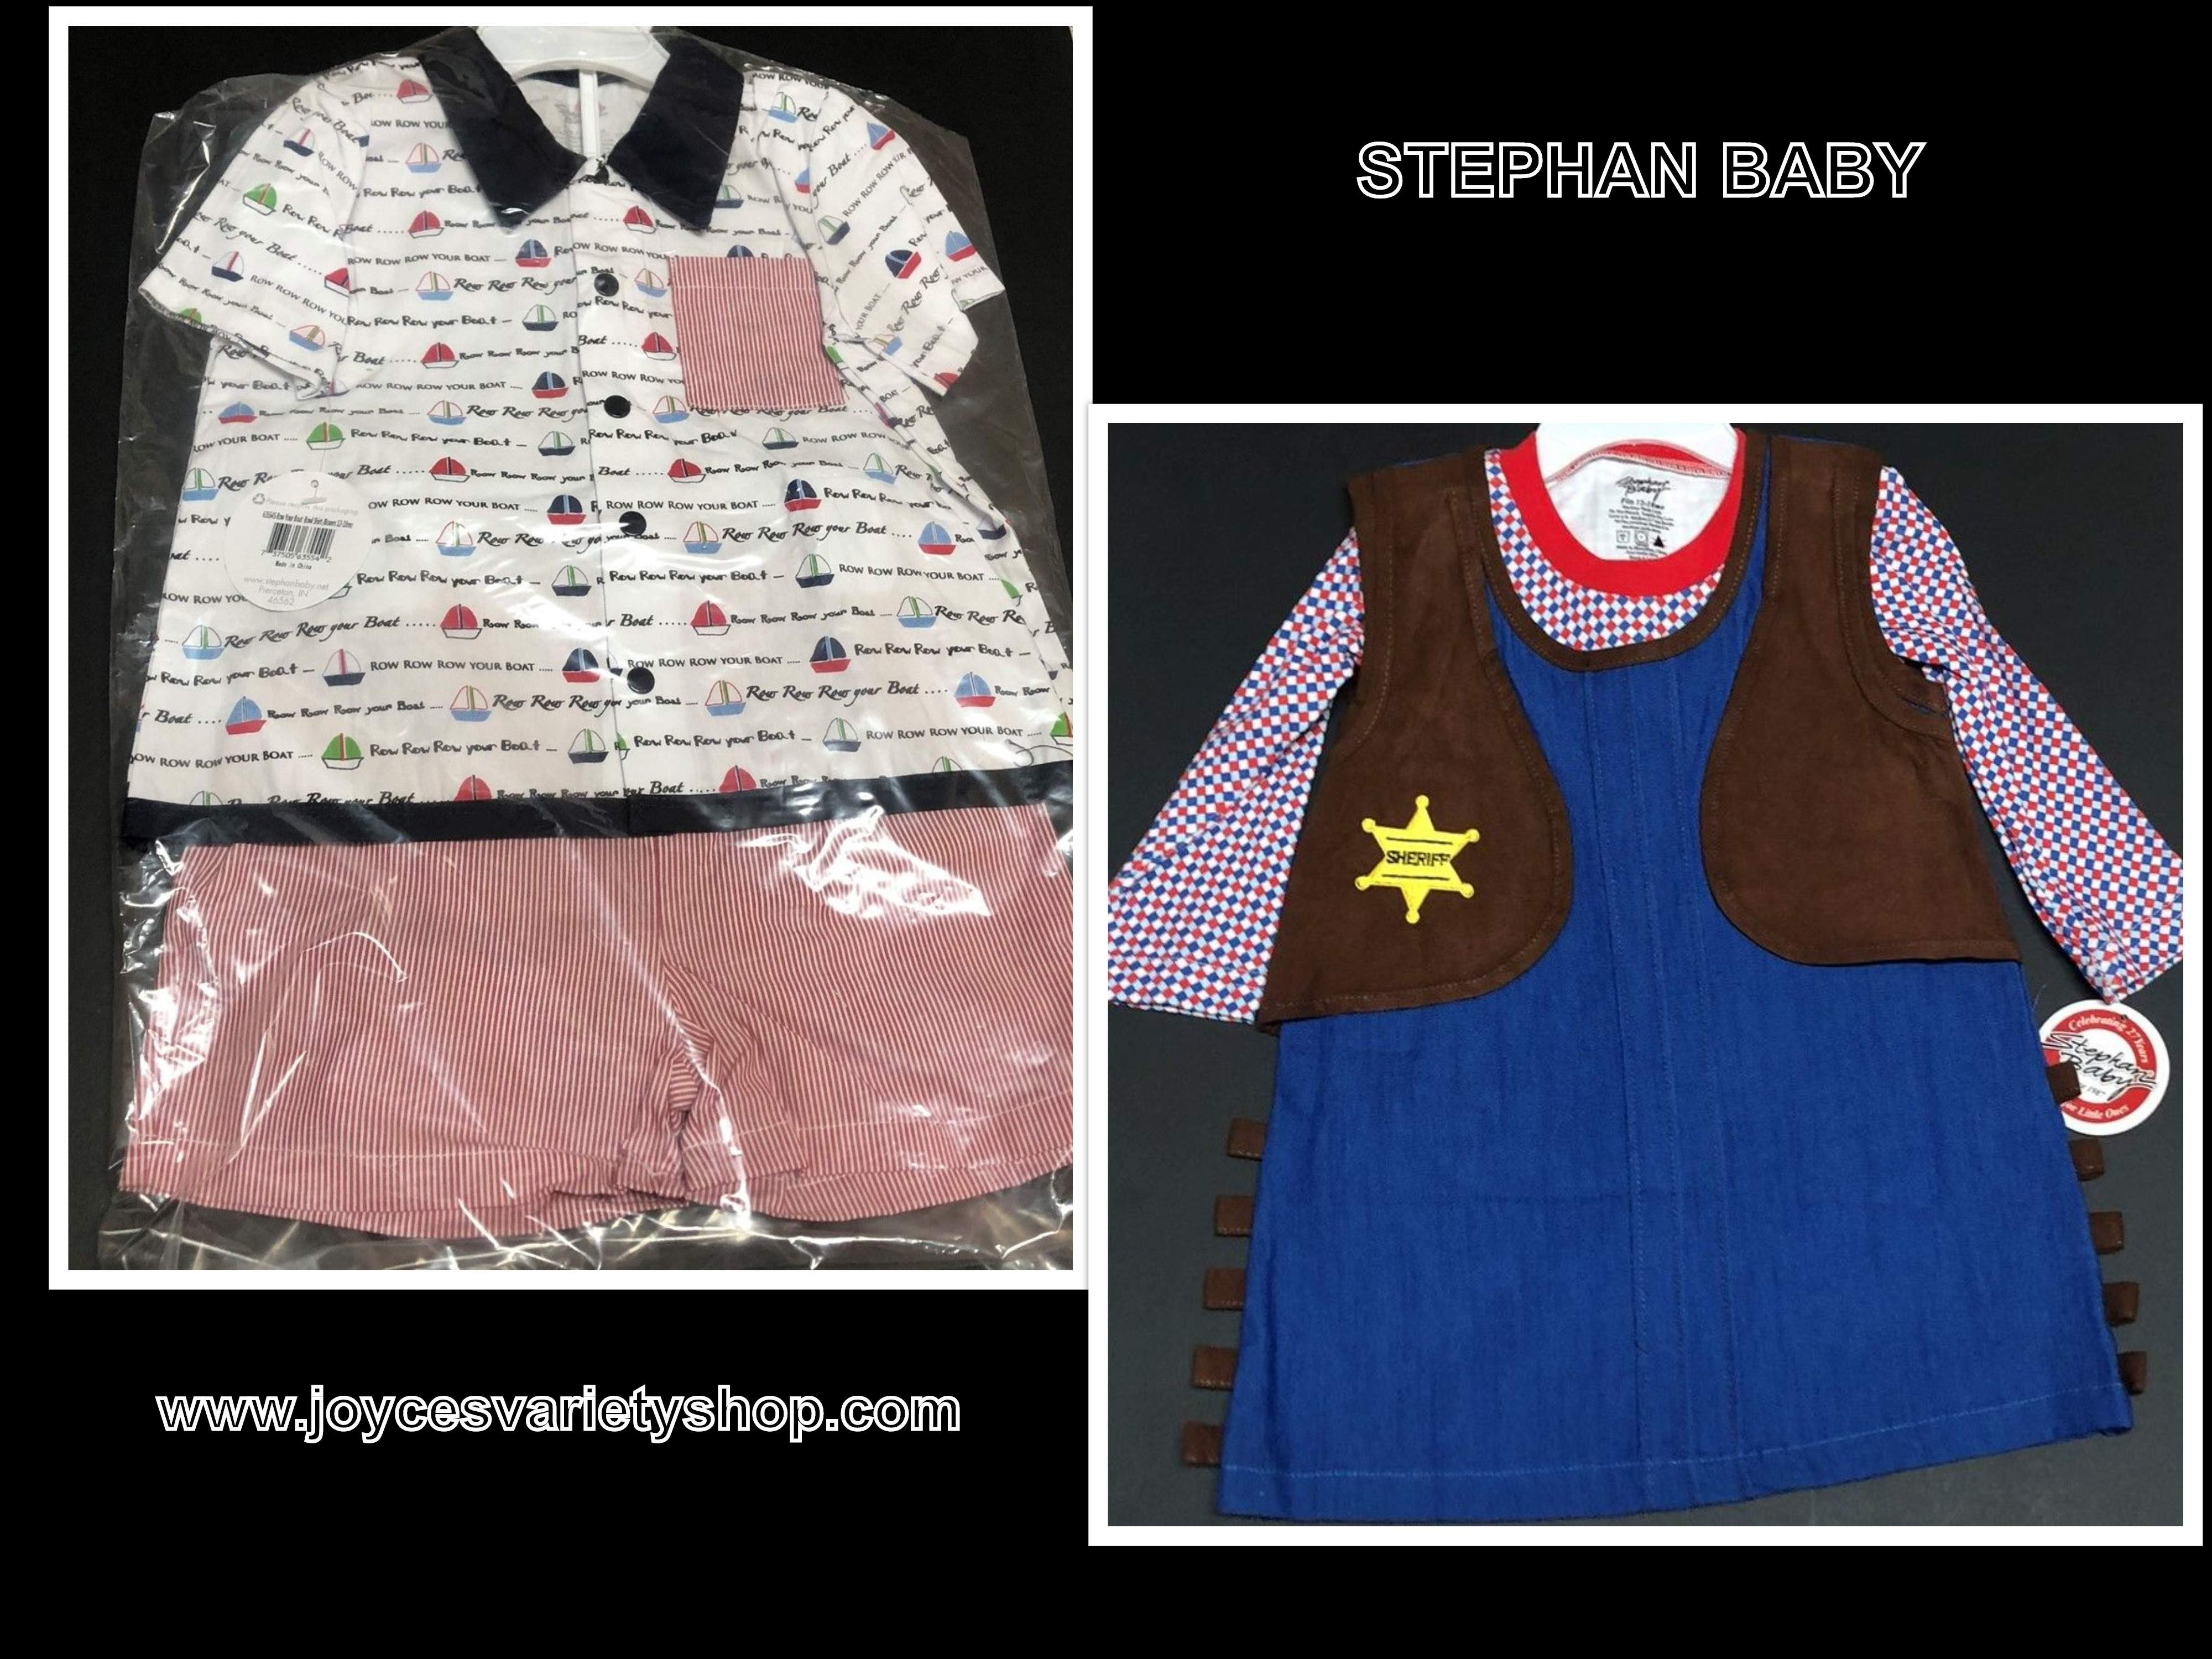 Stephan Baby Two Piece Outfit 100% Cotton Cowgirl Dress or Sailing Short Set